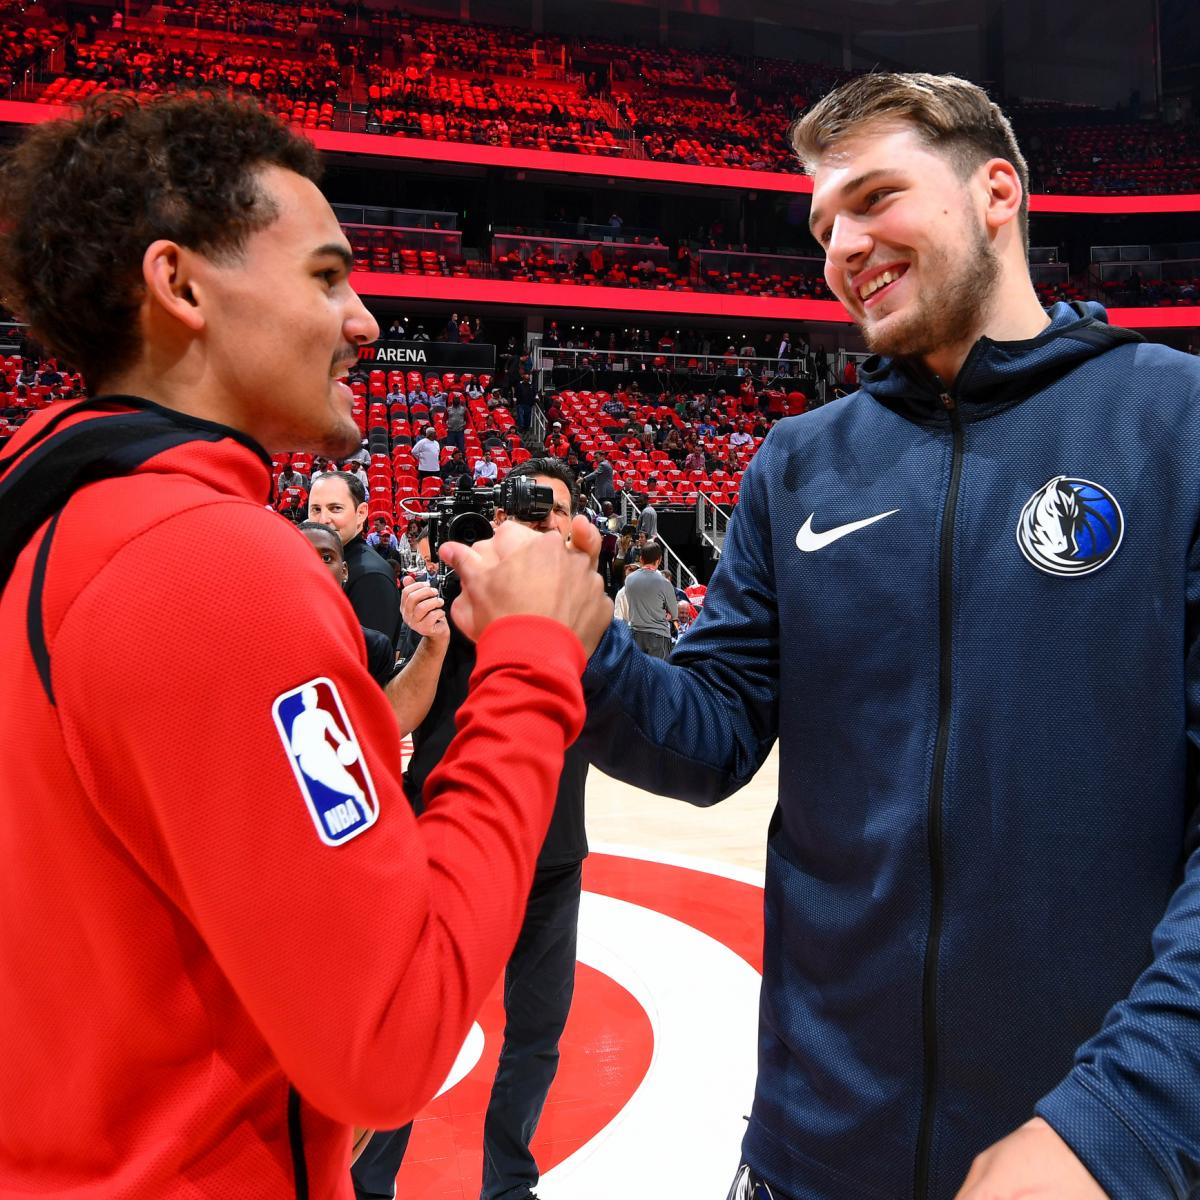 Luka Doncic, Trae Young, Deandre Ayton Named 2018-19 NBA